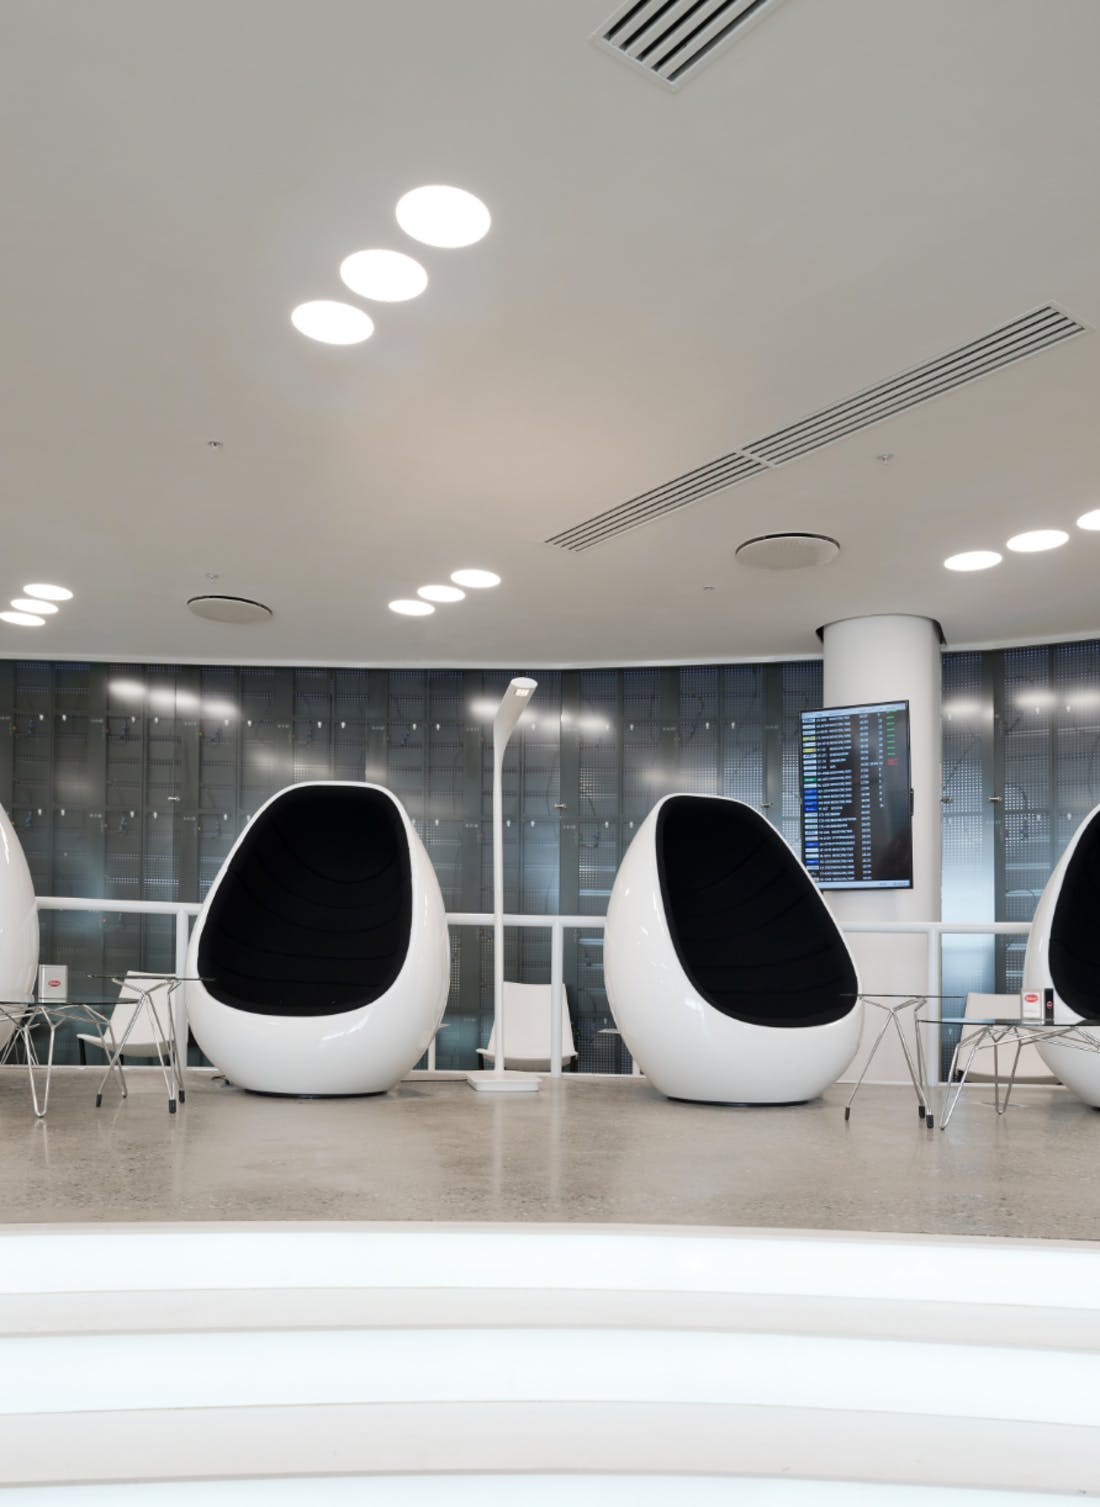 Kubikoff design chair kurumoch international airport vip lounges 12 26 58